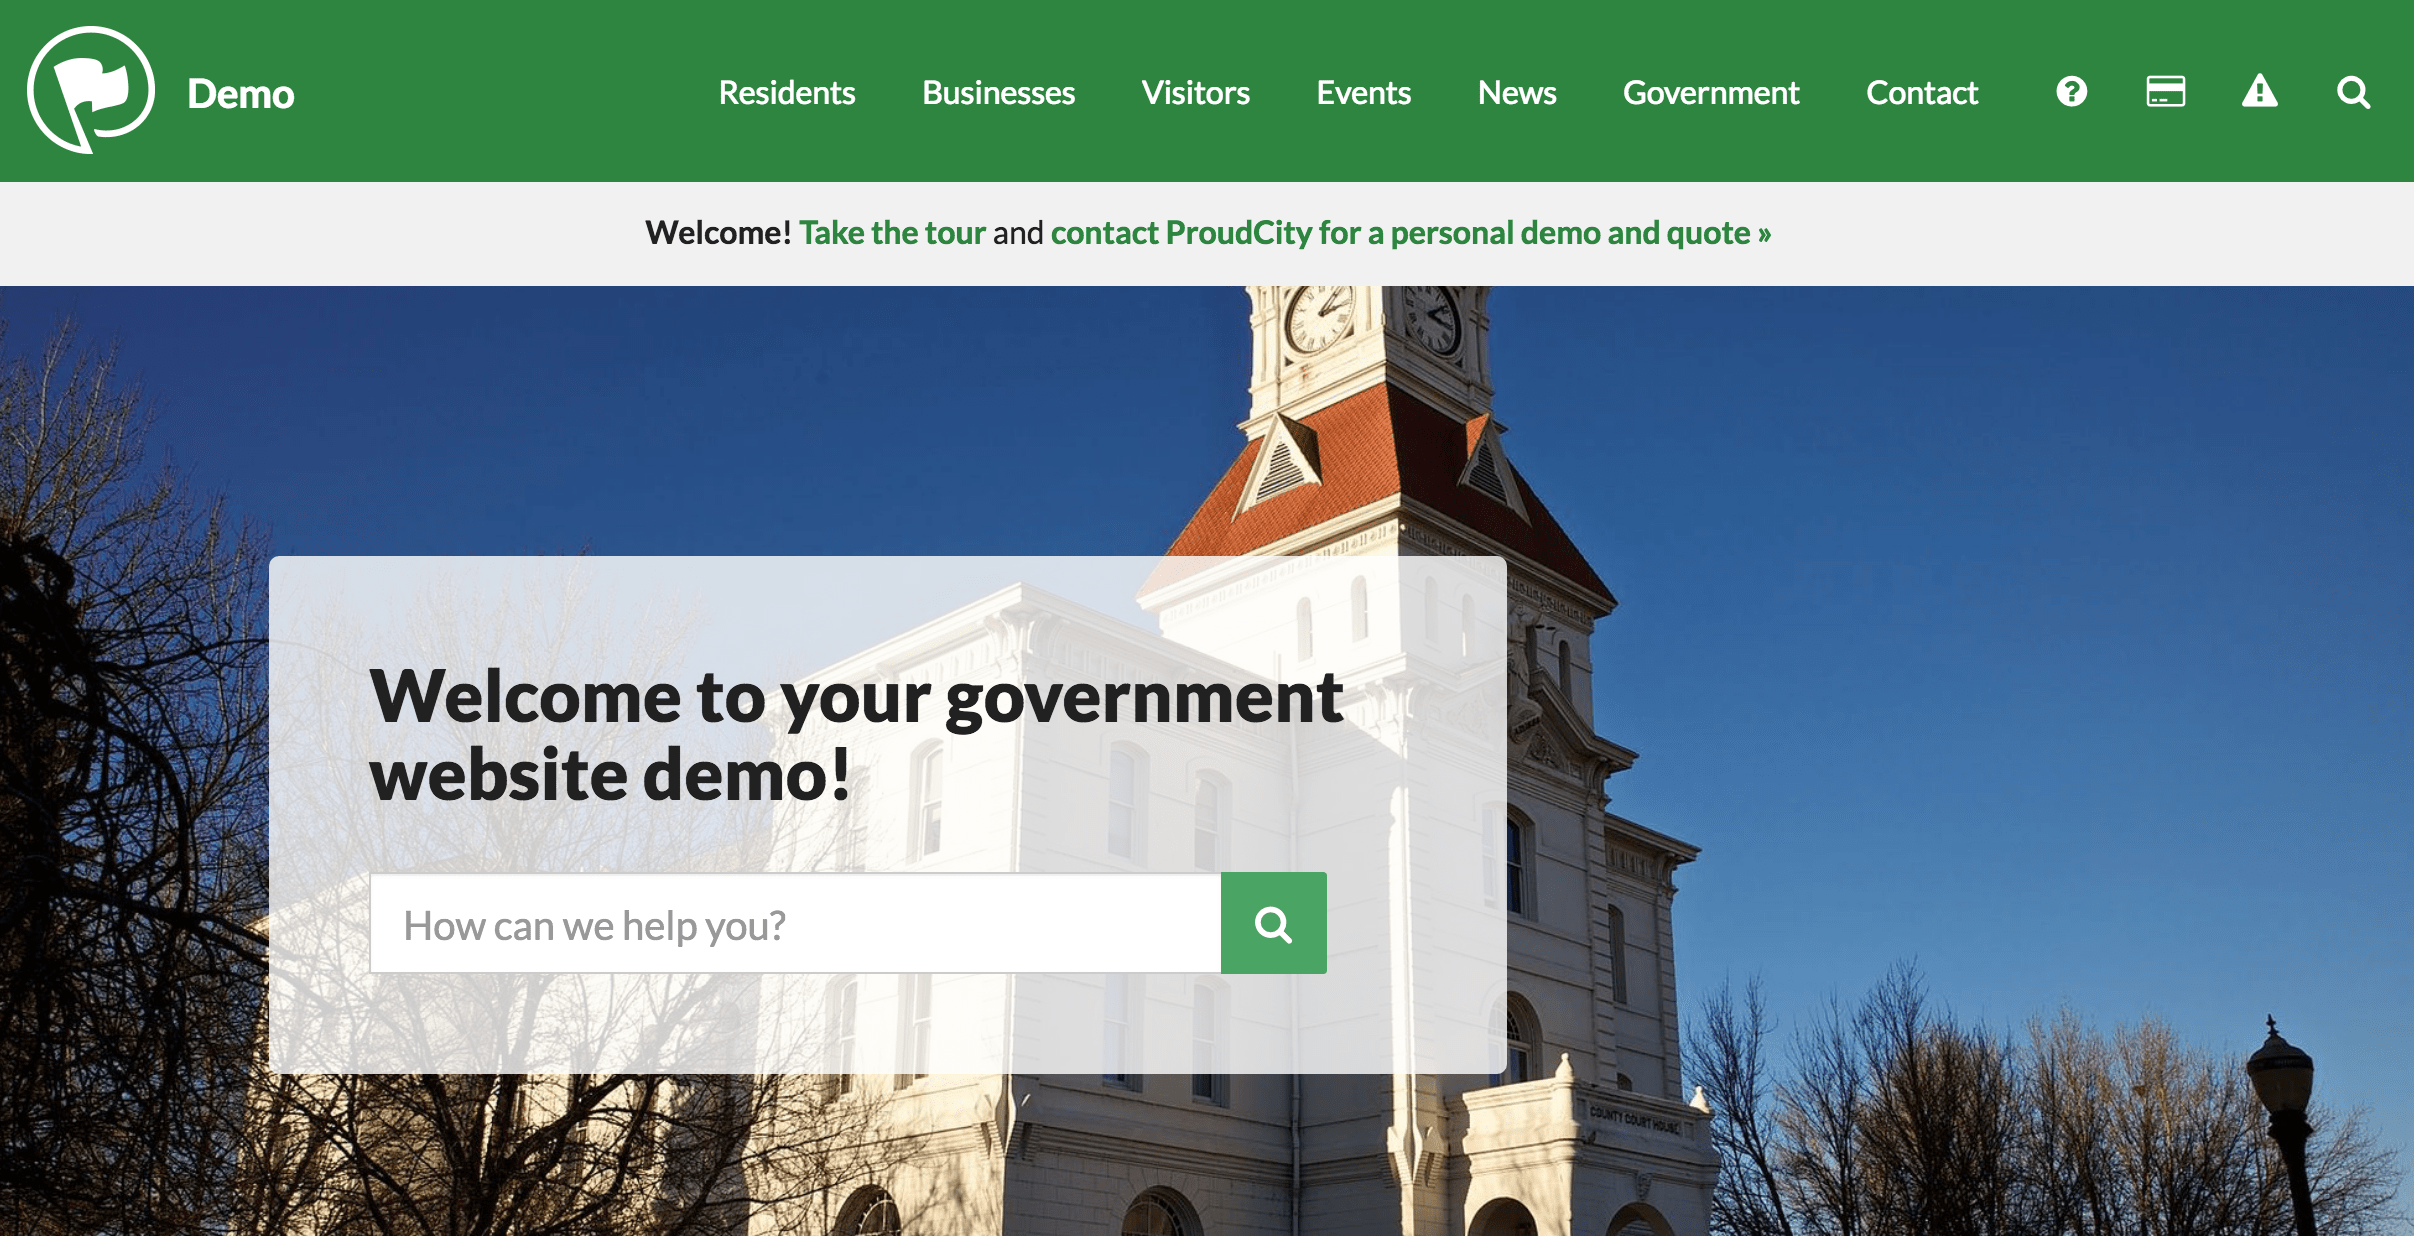 Government website demo